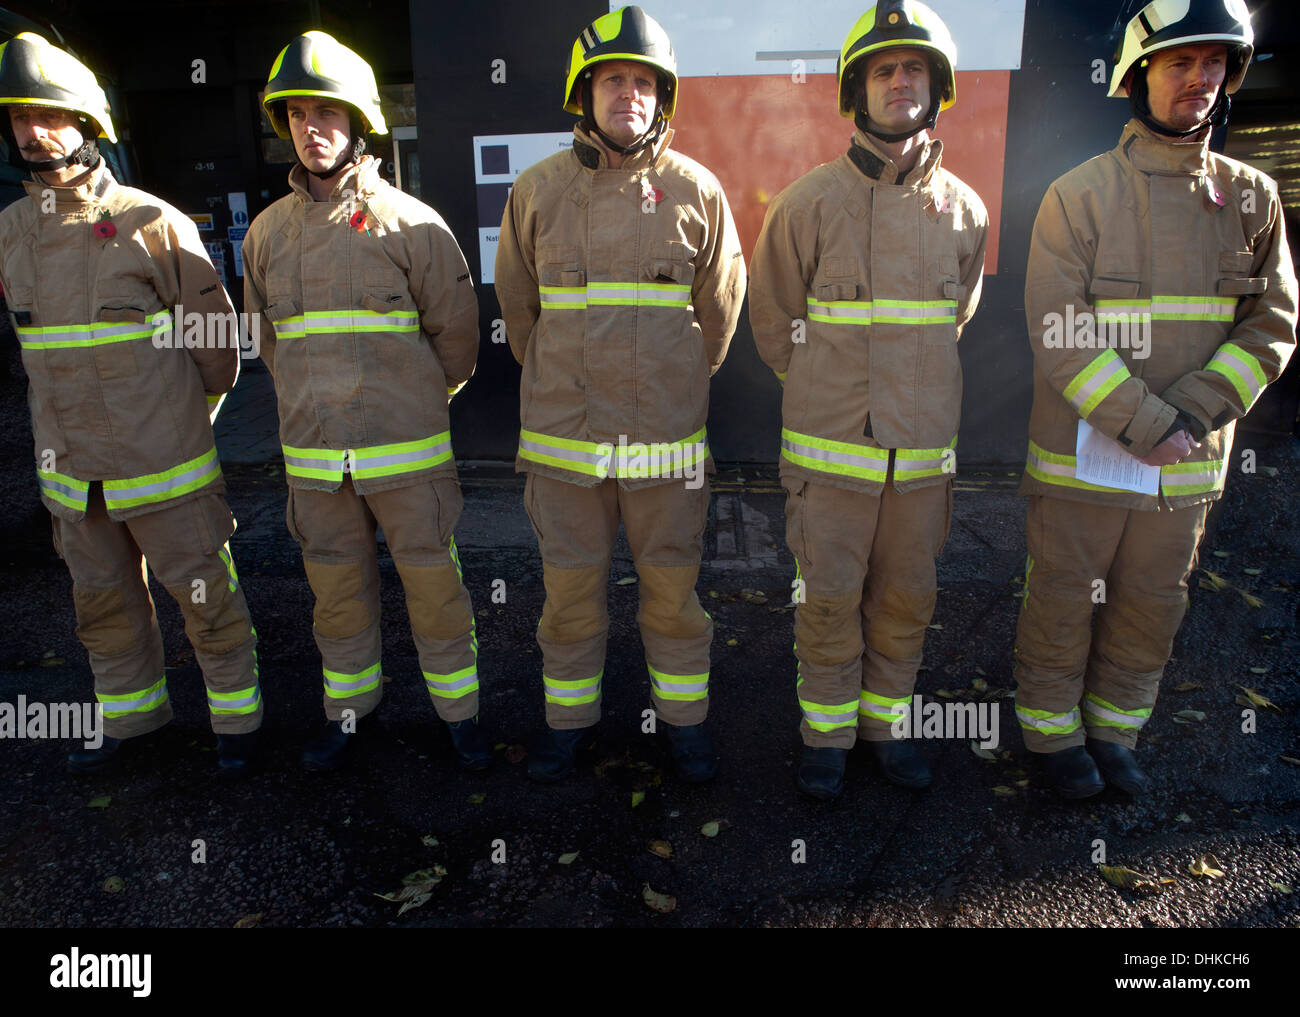 hFiremen stand to attention at a remembrance day rally - Stock Image